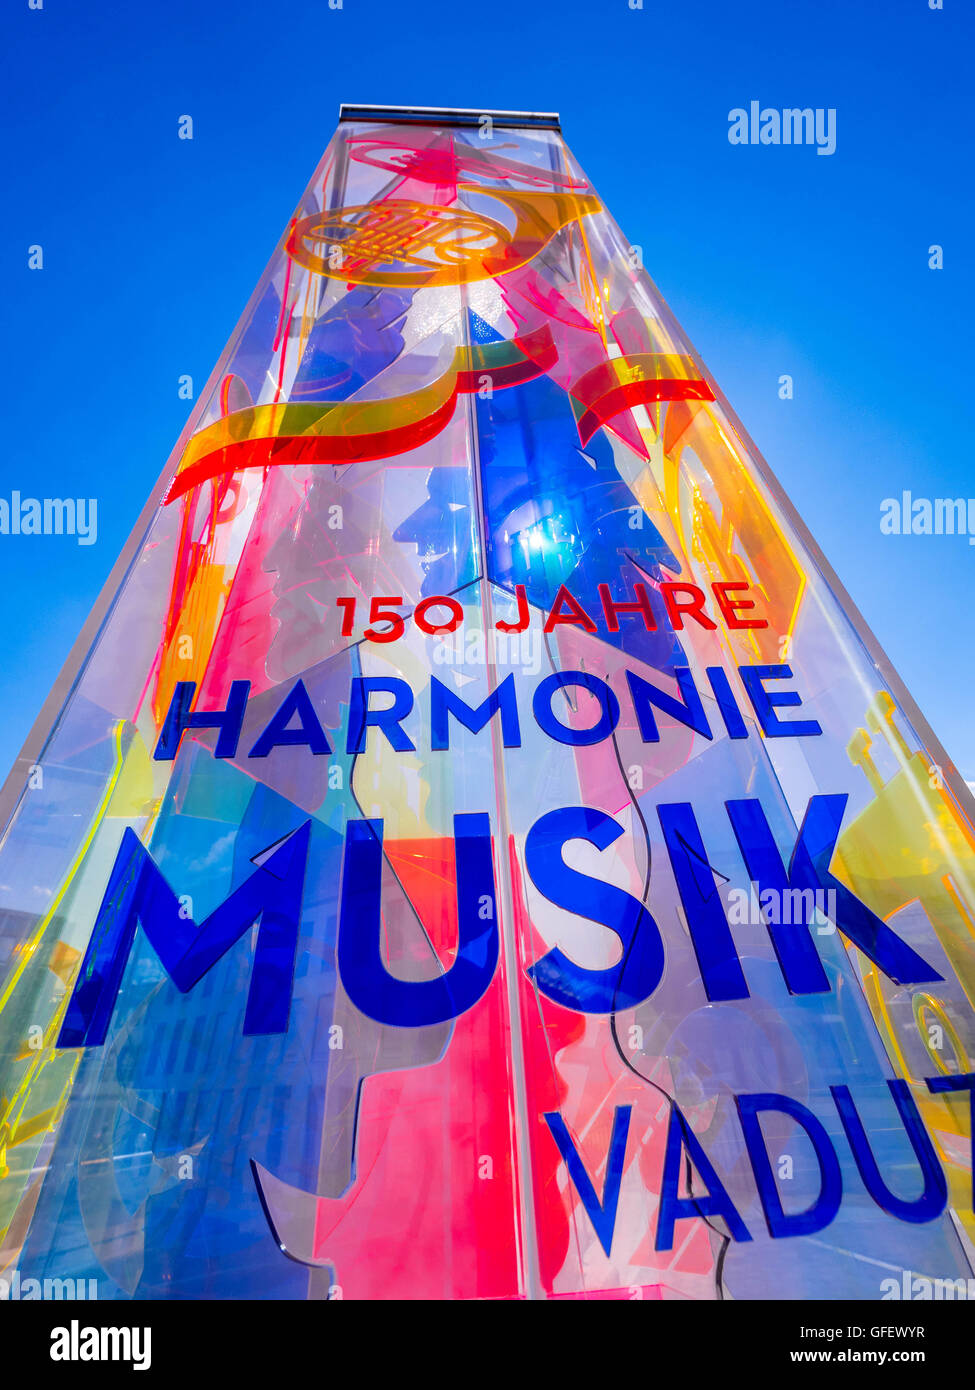 Colorful advertising column in Vaduz, Liechtenstein, Europe - Stock Image